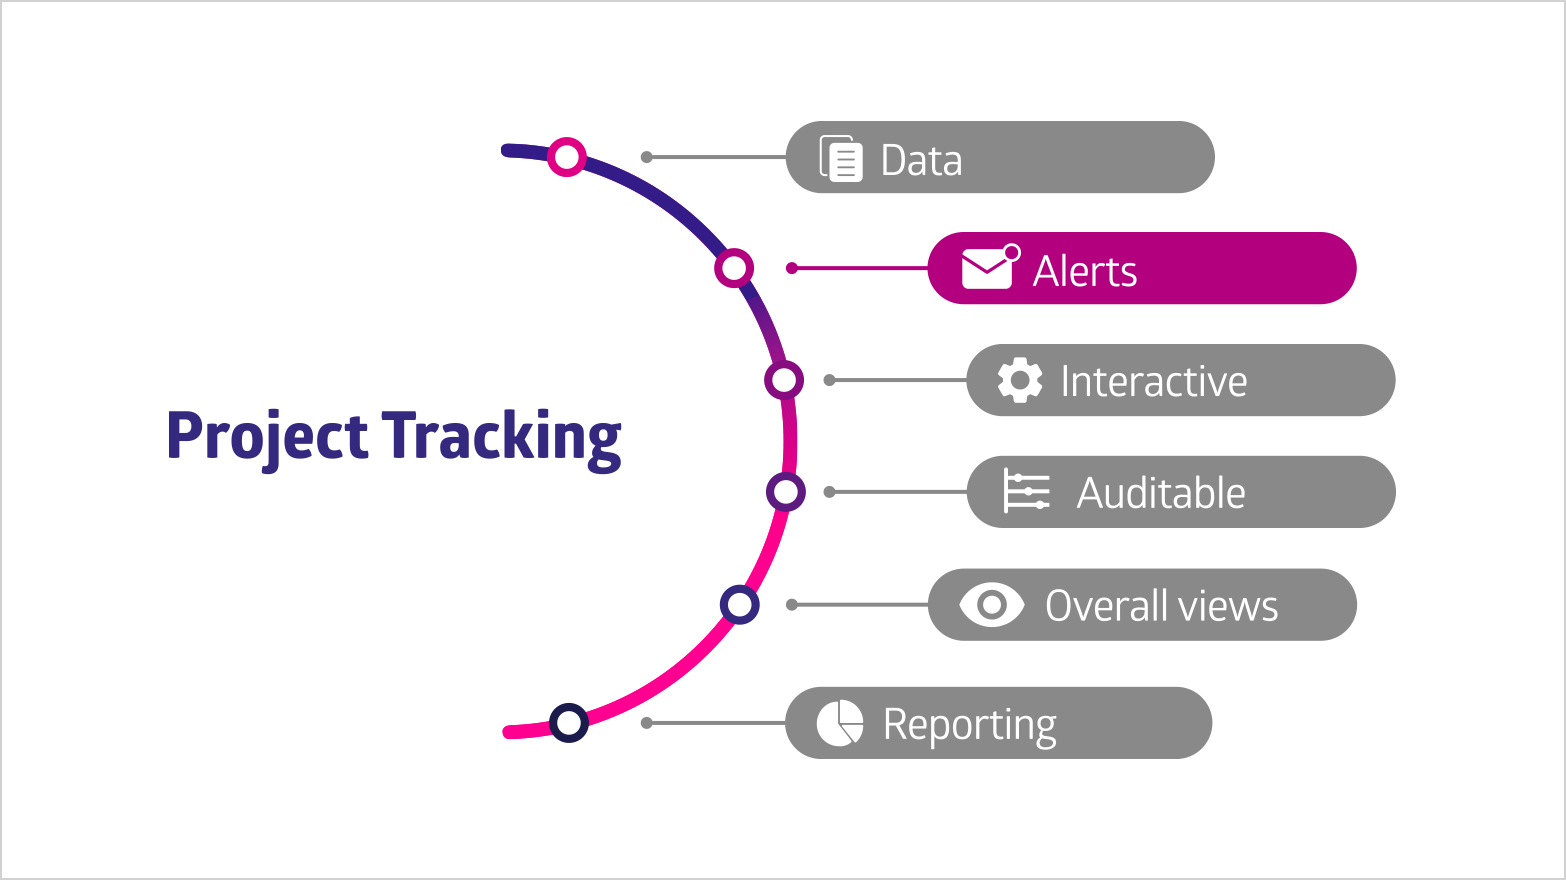 The Project Tracking Bow shows the Alerts as one of the main pillars of Project Tracking